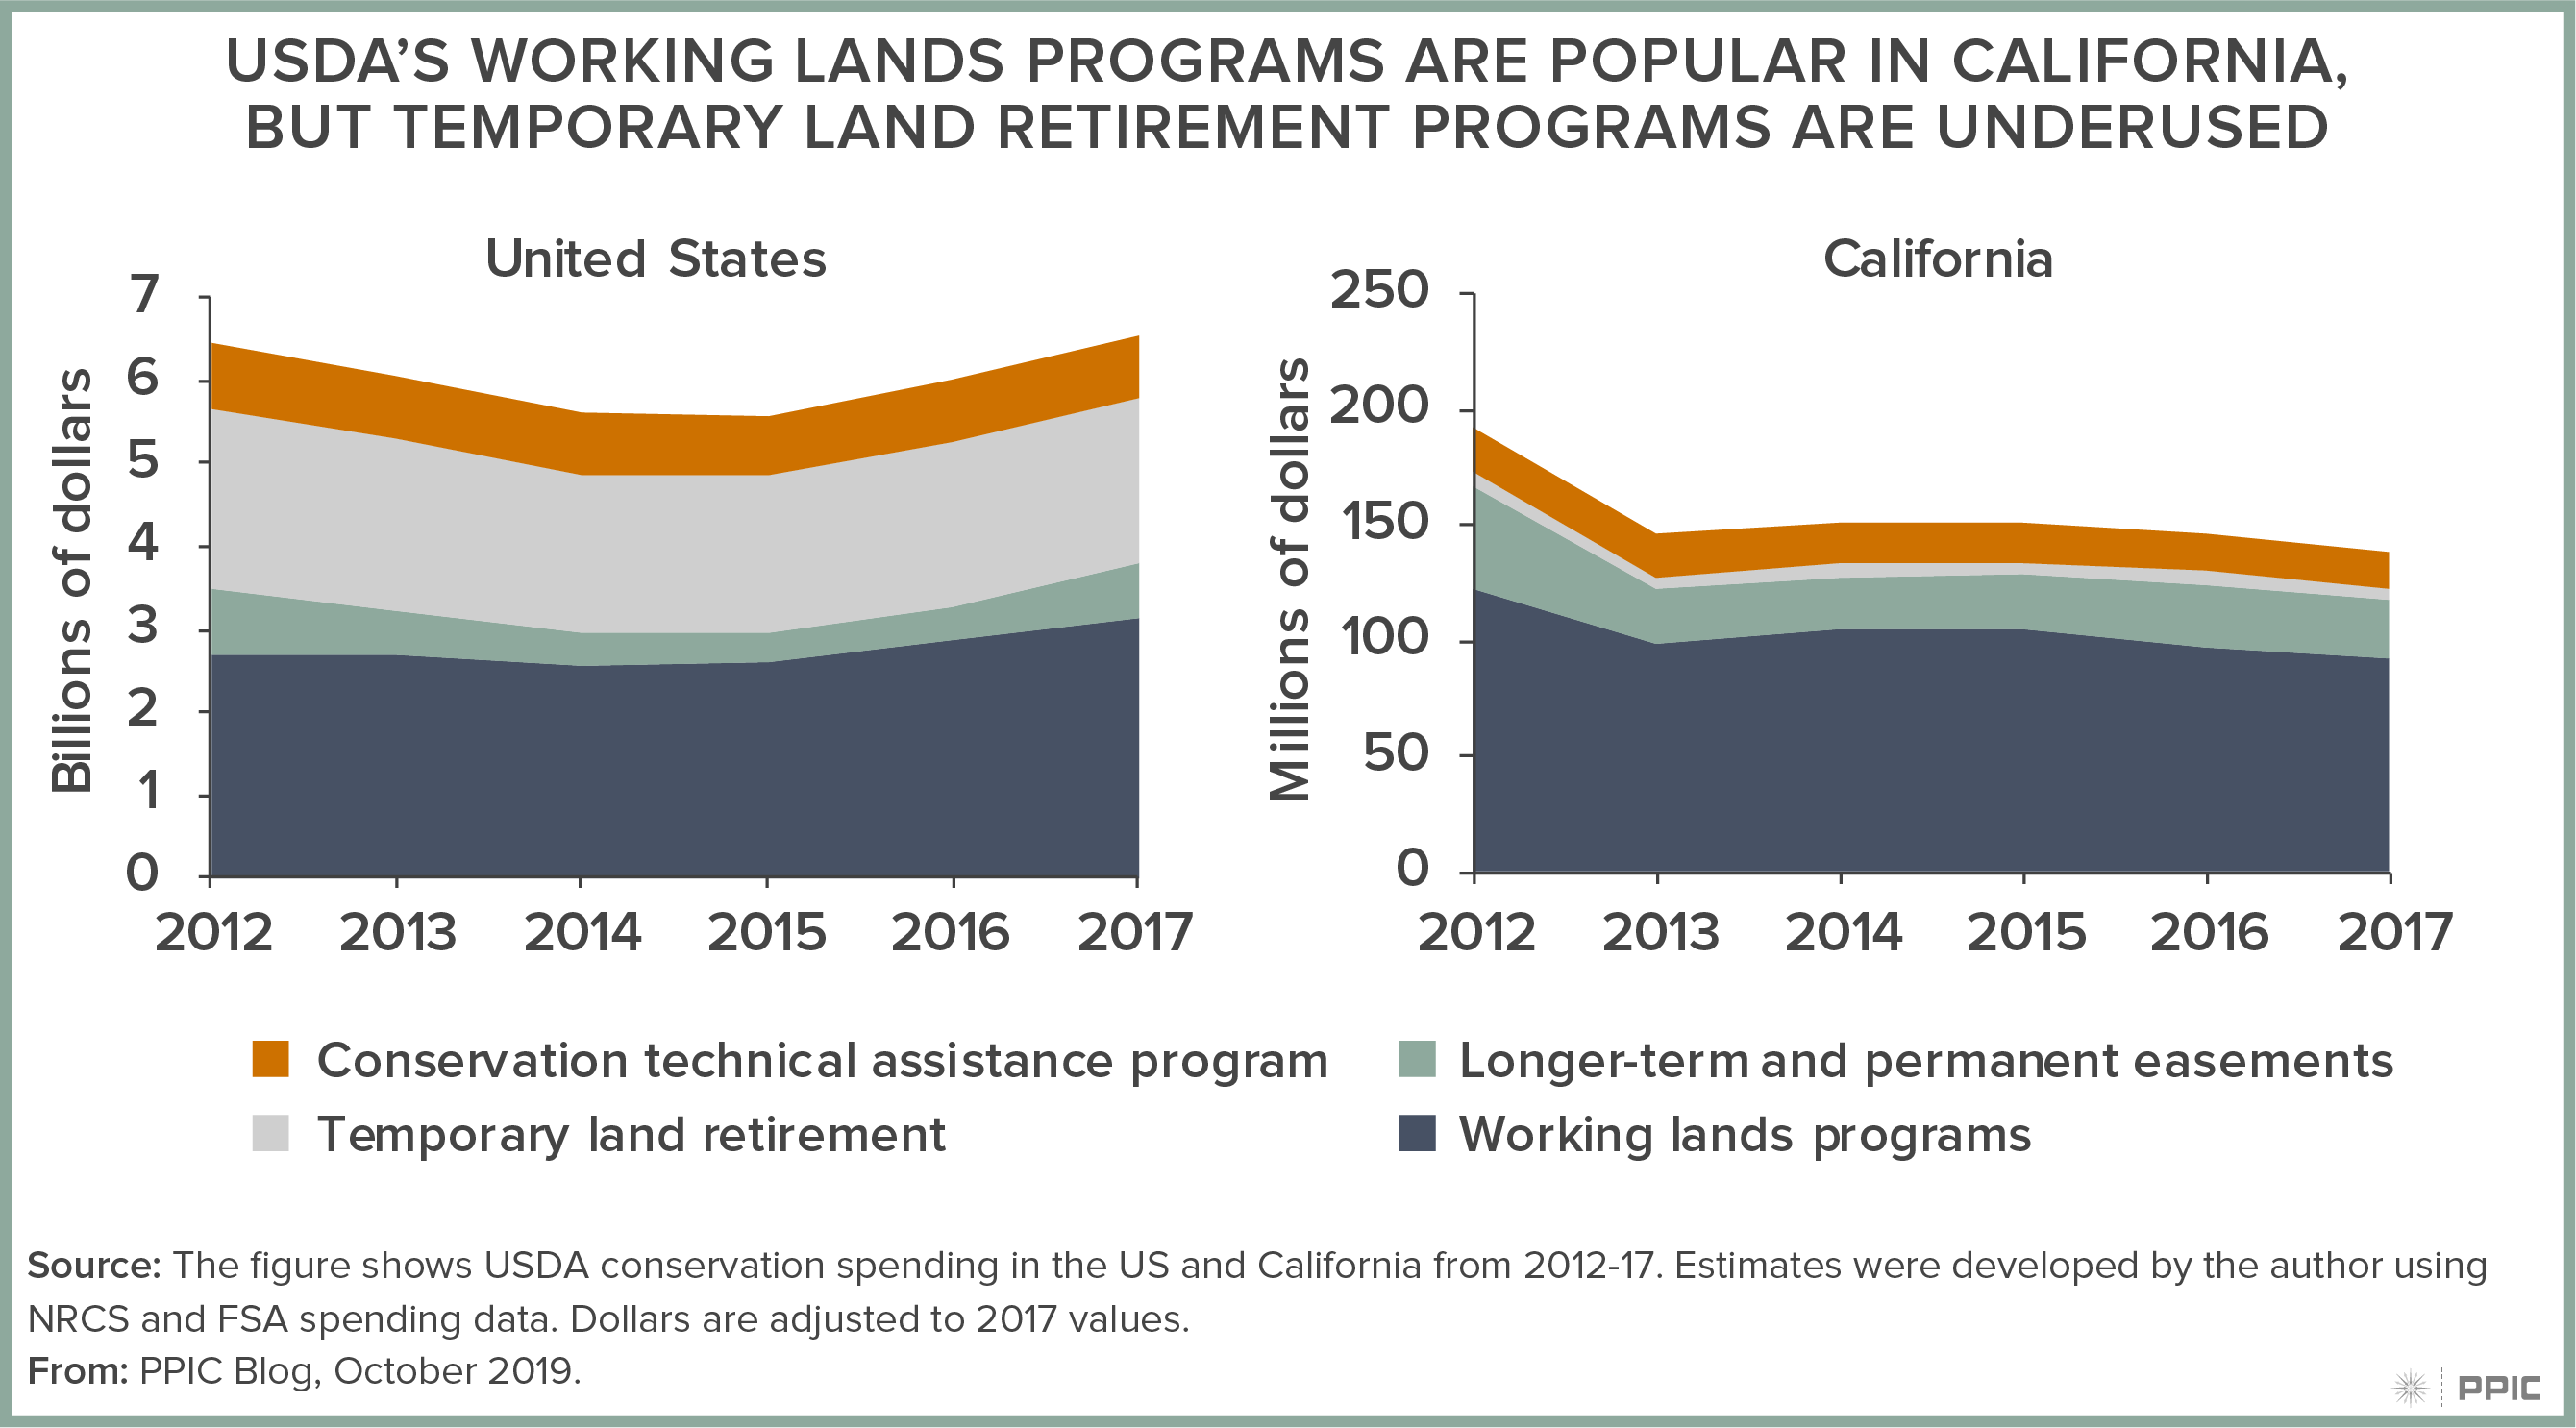 figure - USDA's Working Lands Programs Are Popular in California, but Temporary Land Retirement Programs Are Underused